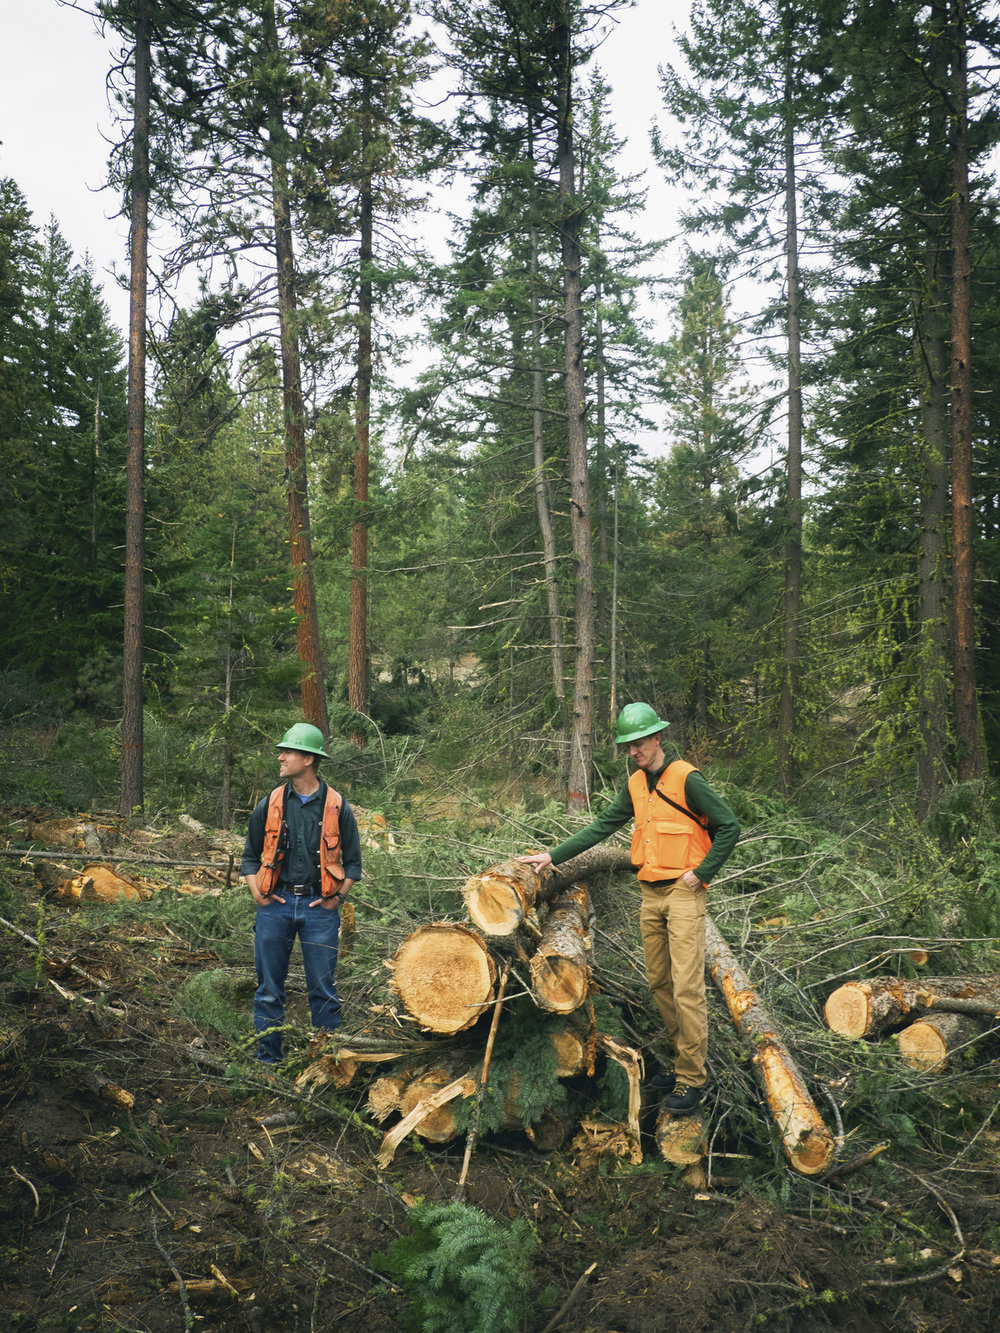 Thinning to restore forest health in Central Washington. Photo © Nathan Hadley.